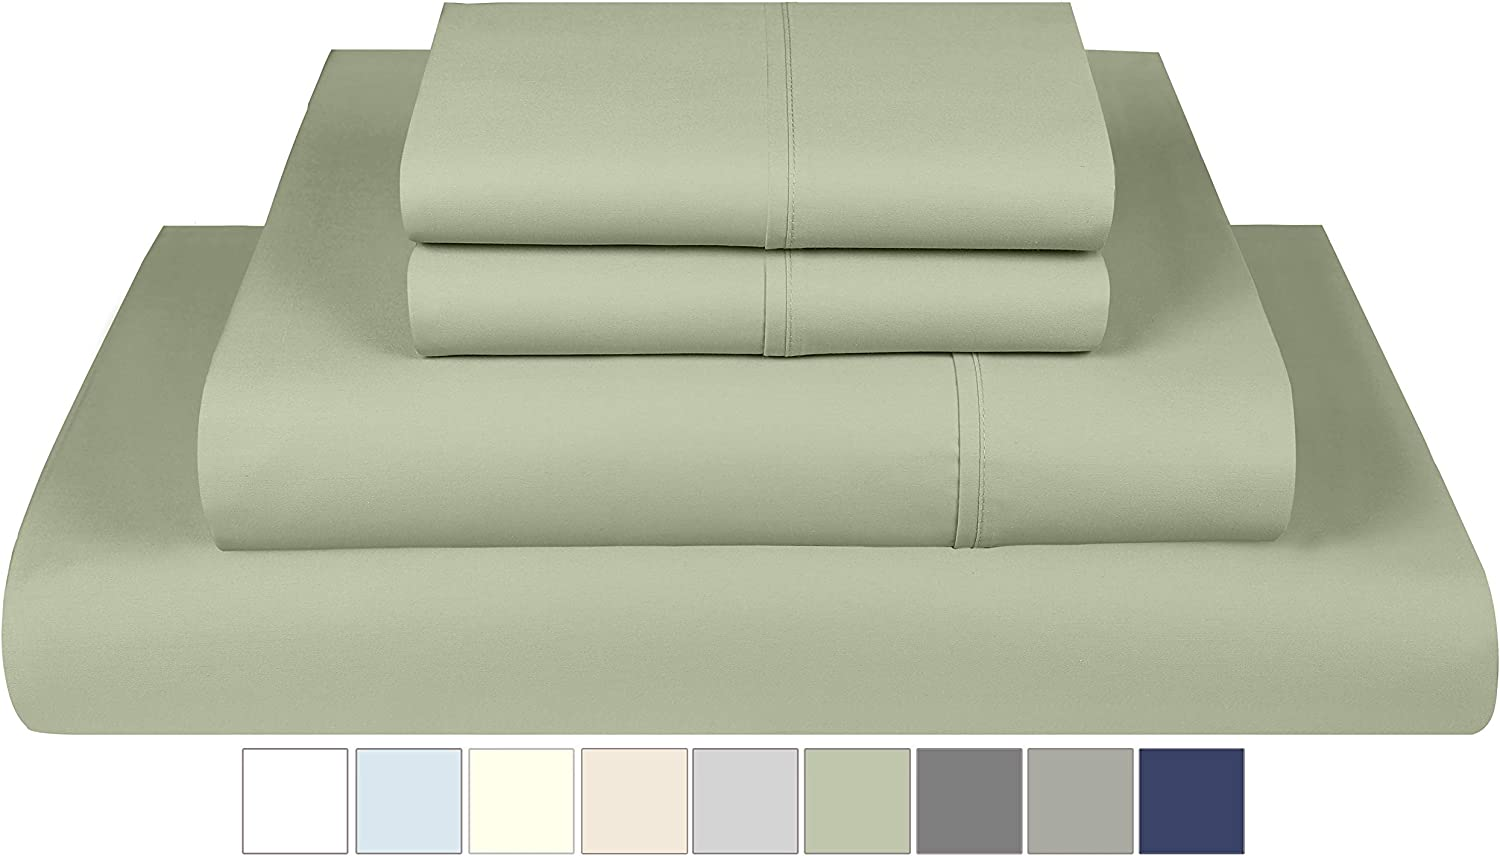 Threadmill Home Linen 800 Thread Count 100% Extra-Long Staple Cotton, Queen 4 Piece Bed Sheet Set, Luxury Bedding, Fits Mattresses up to 18 inches deep, Smooth Sateen Weave, Sage